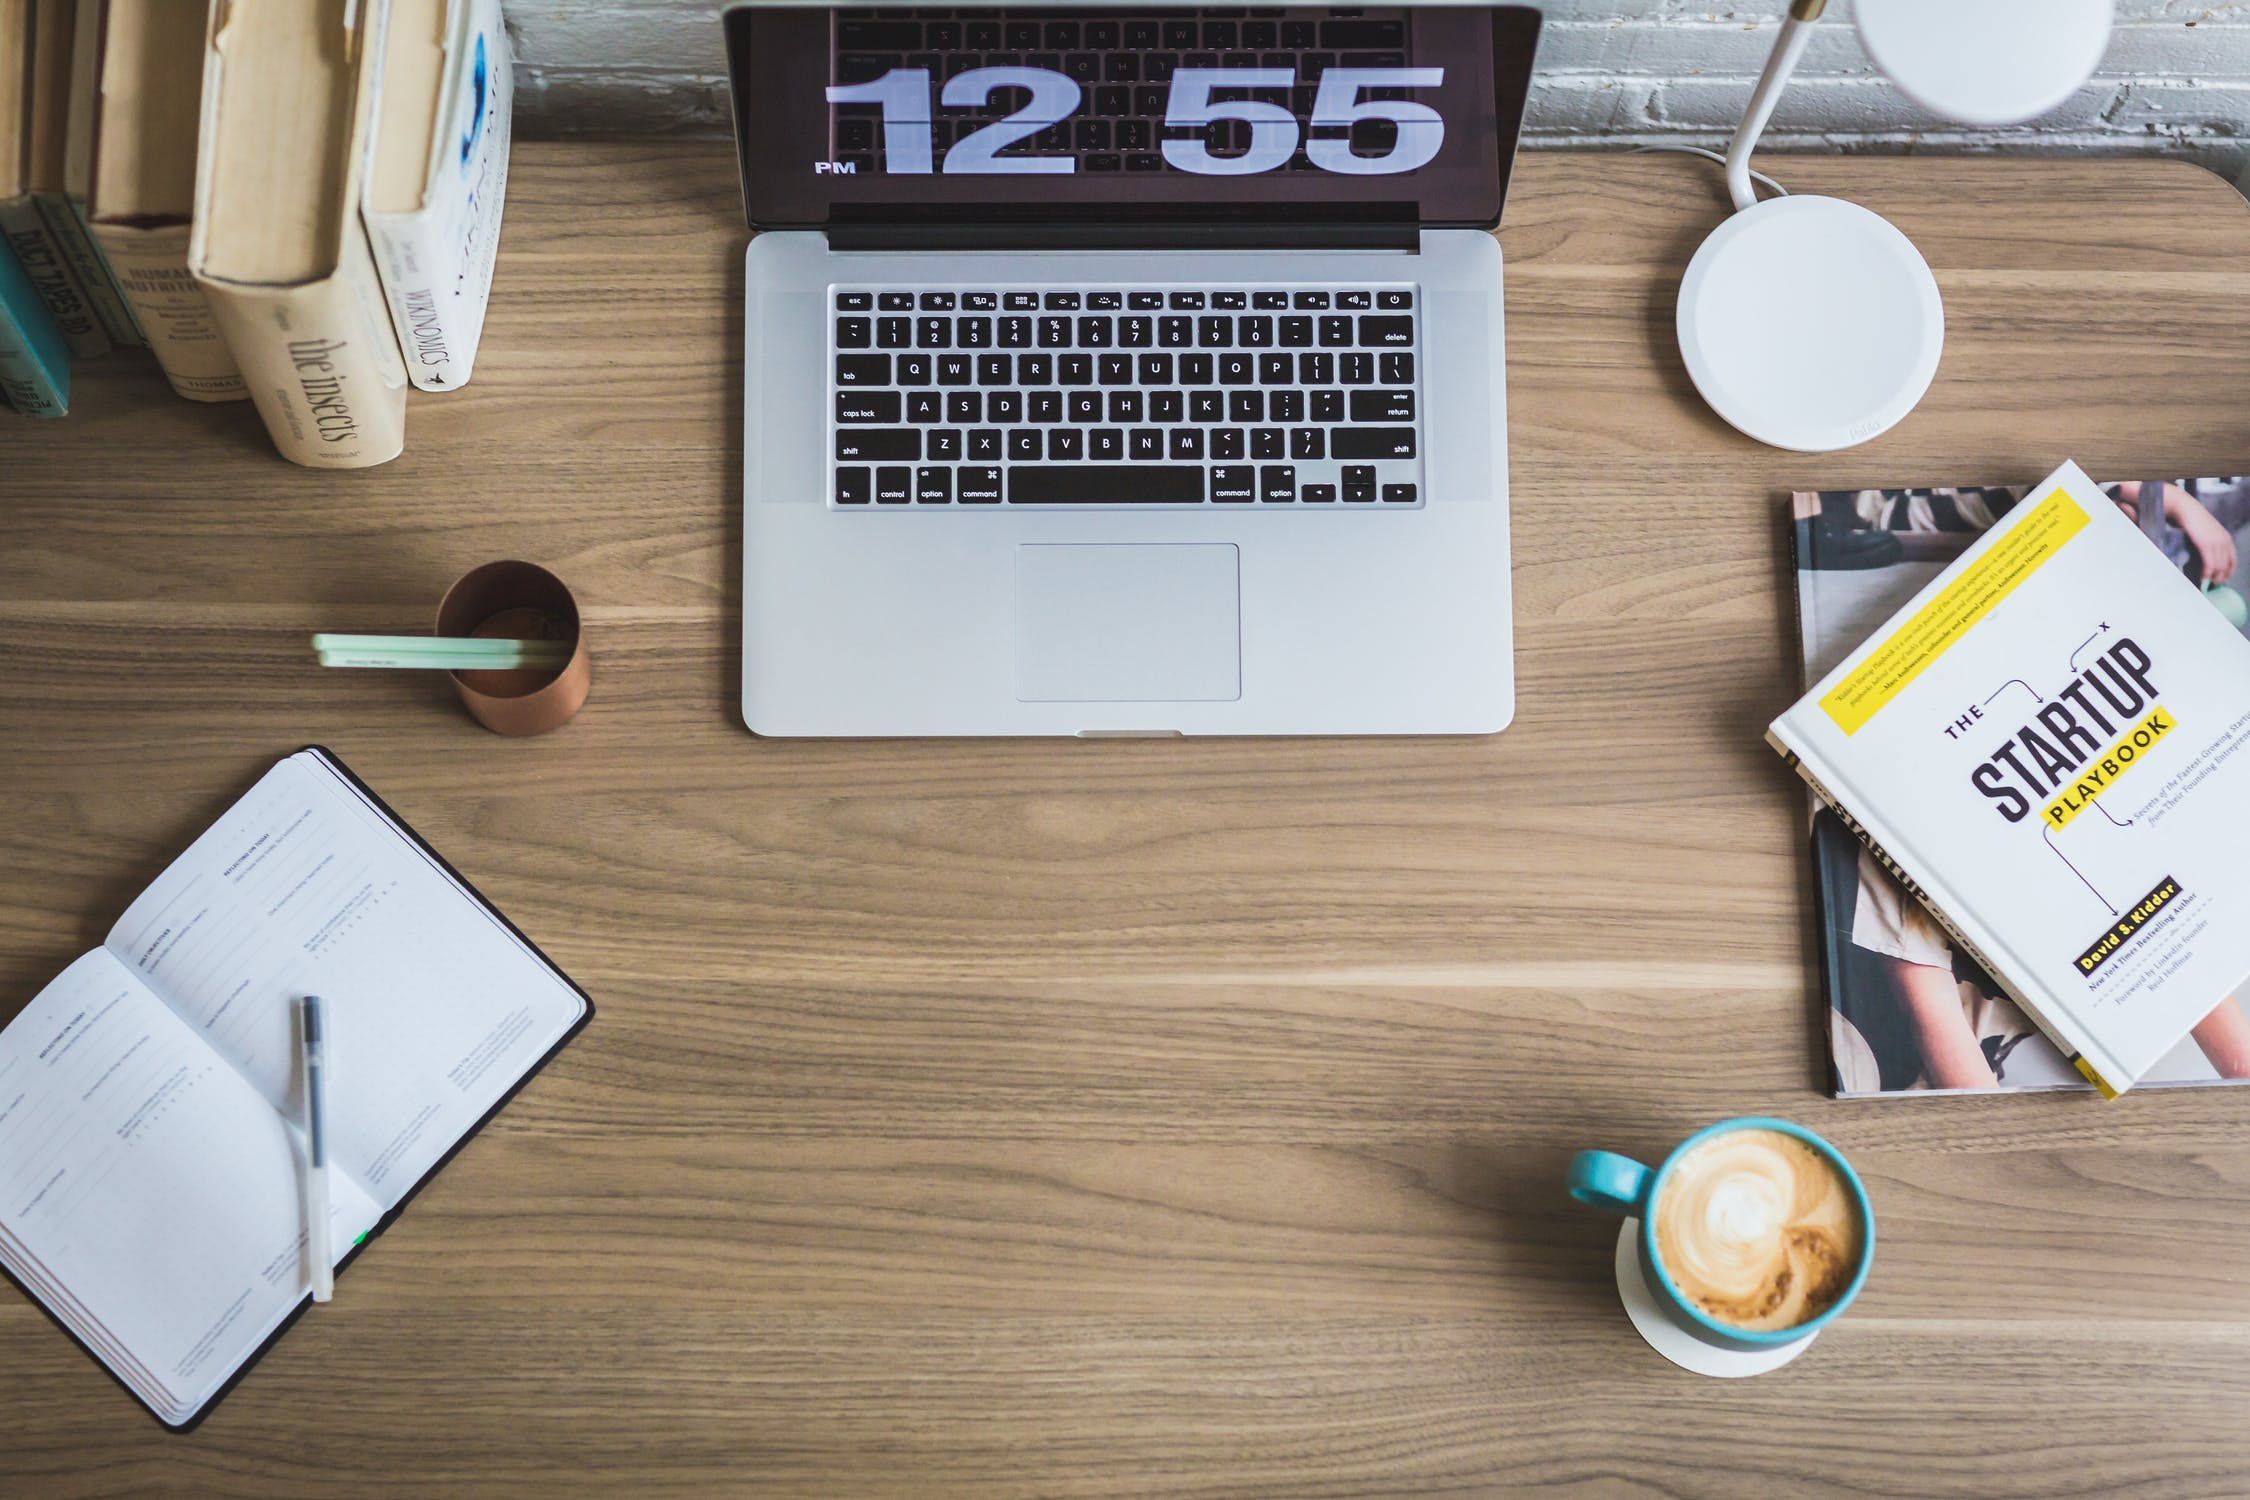 How to Keep Your Home Office Clean During COVID-19 by Cleanhome Sussex